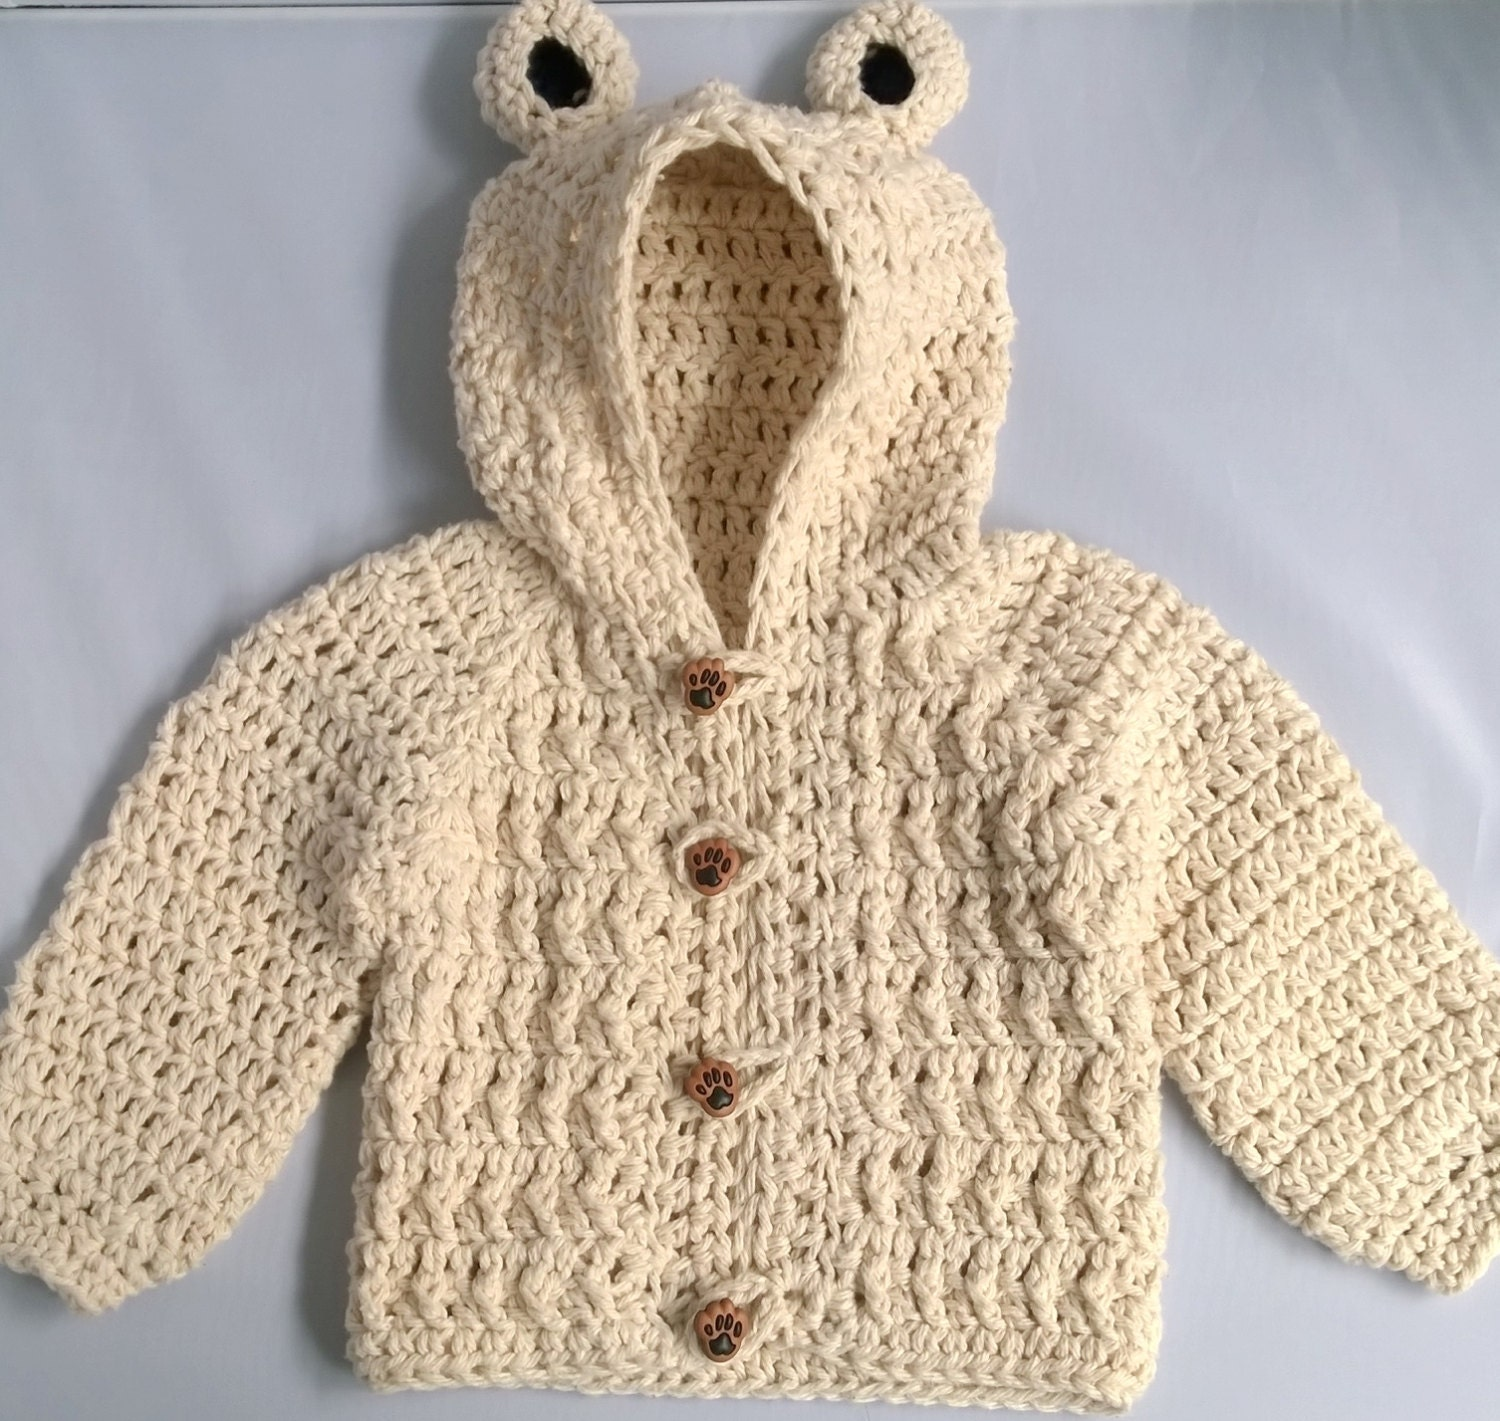 Crochet Baby Boy Sweater Free Patterns : Crochet Baby Boy Sweater Bear Hood Baby Sweater by YarnForBaby